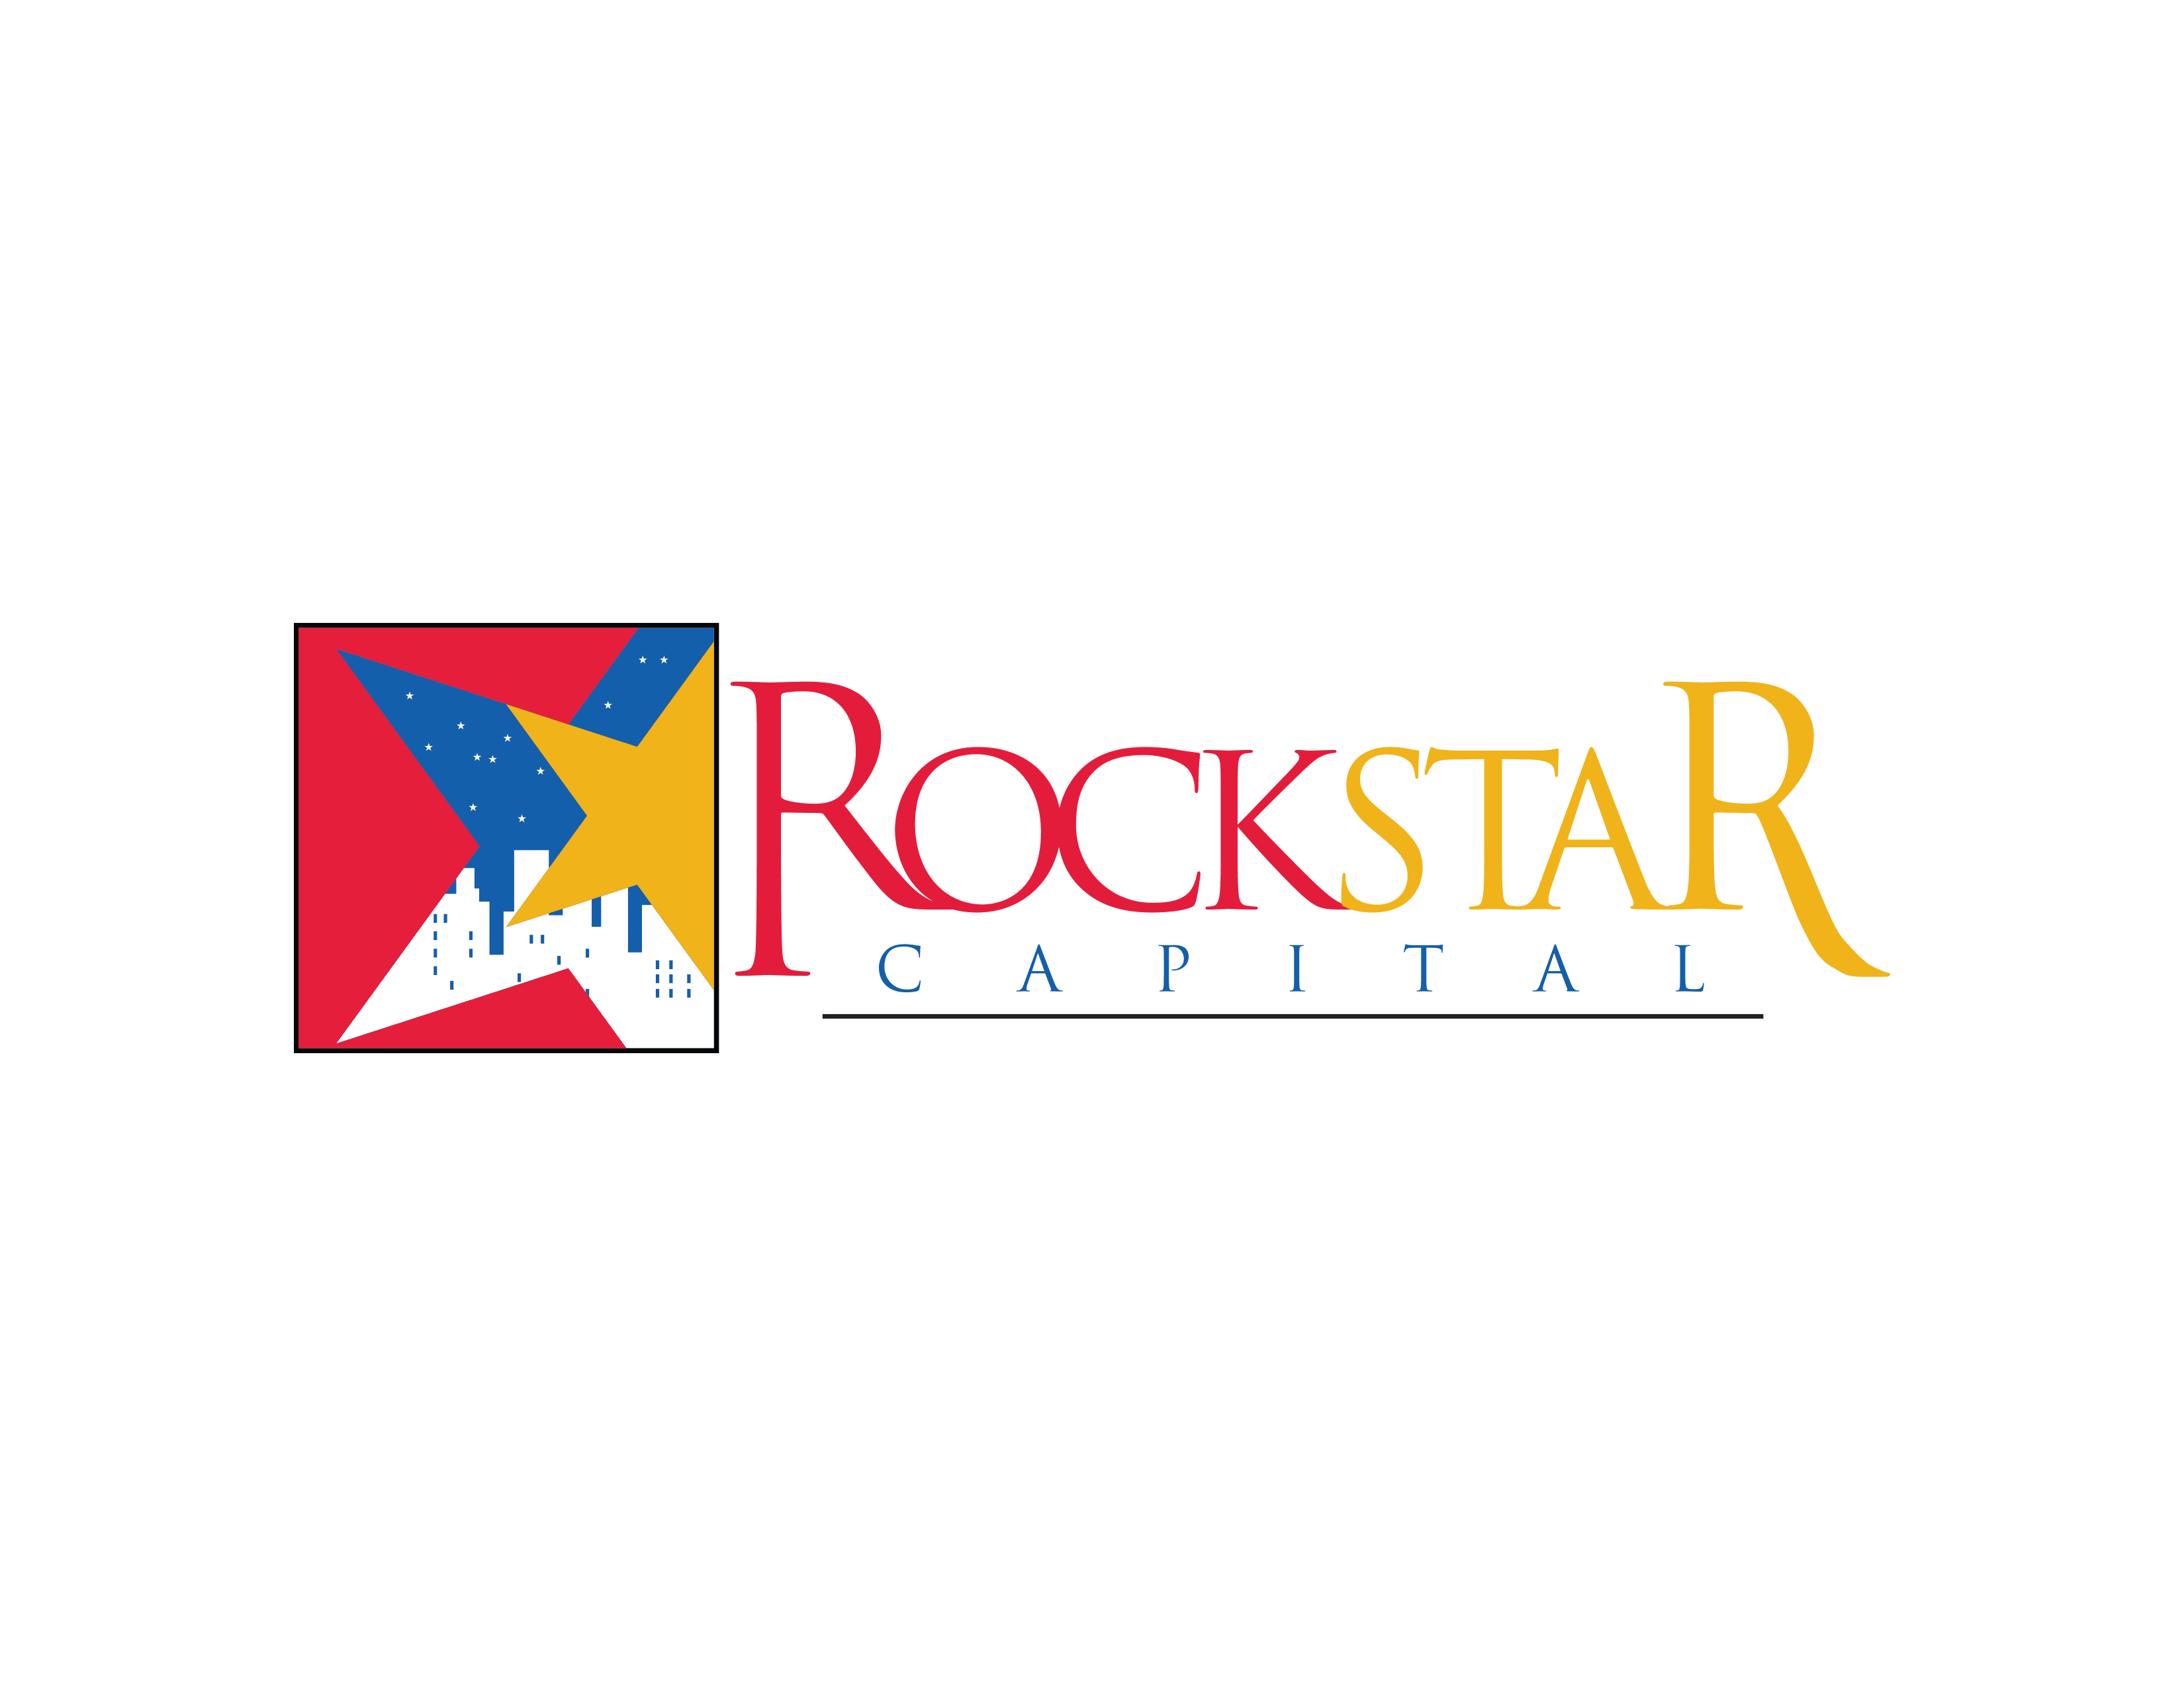 Rockstar Capital